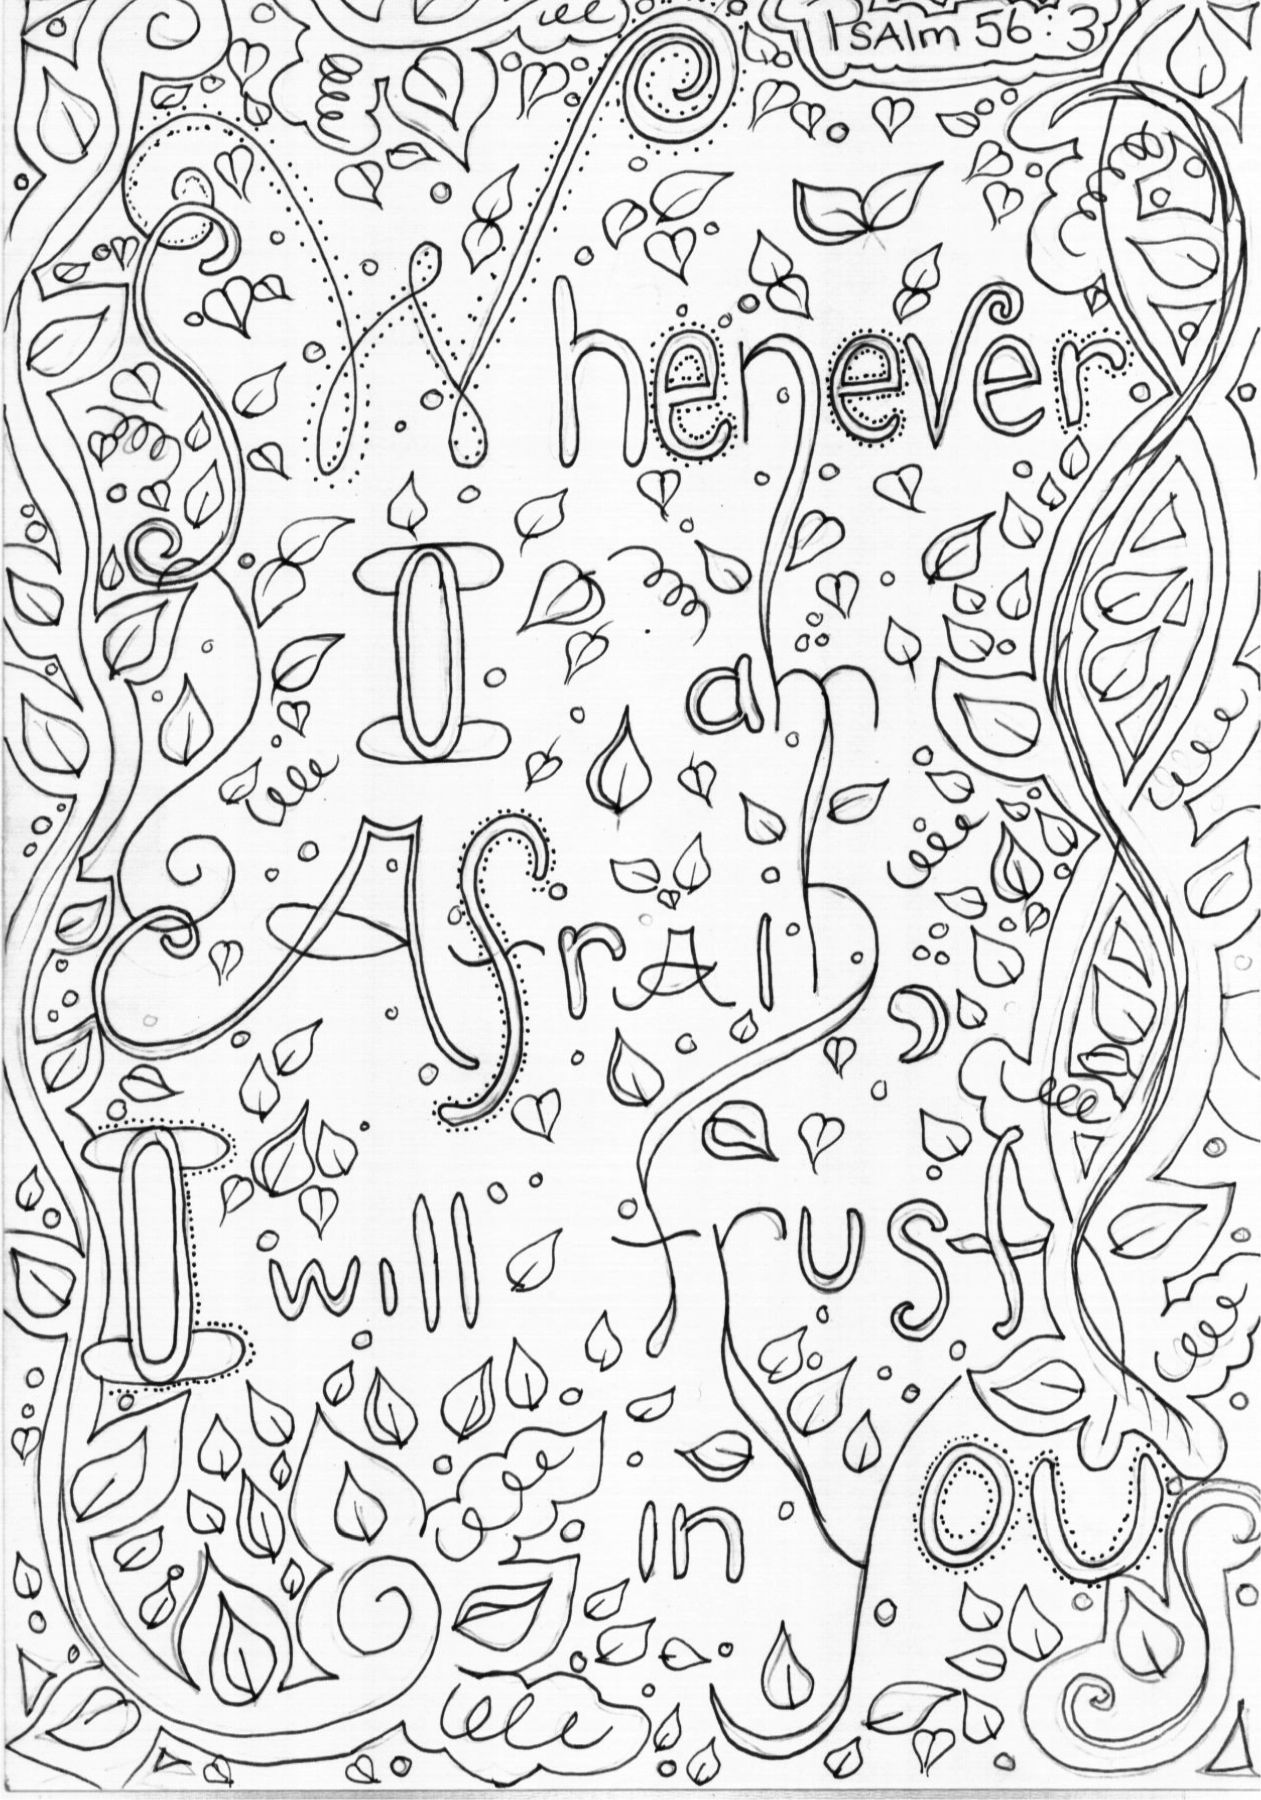 Whenever I Am Afraid Will Trust In You Psalm 563 Bible Coloring Page Journaling Inspiration Journal